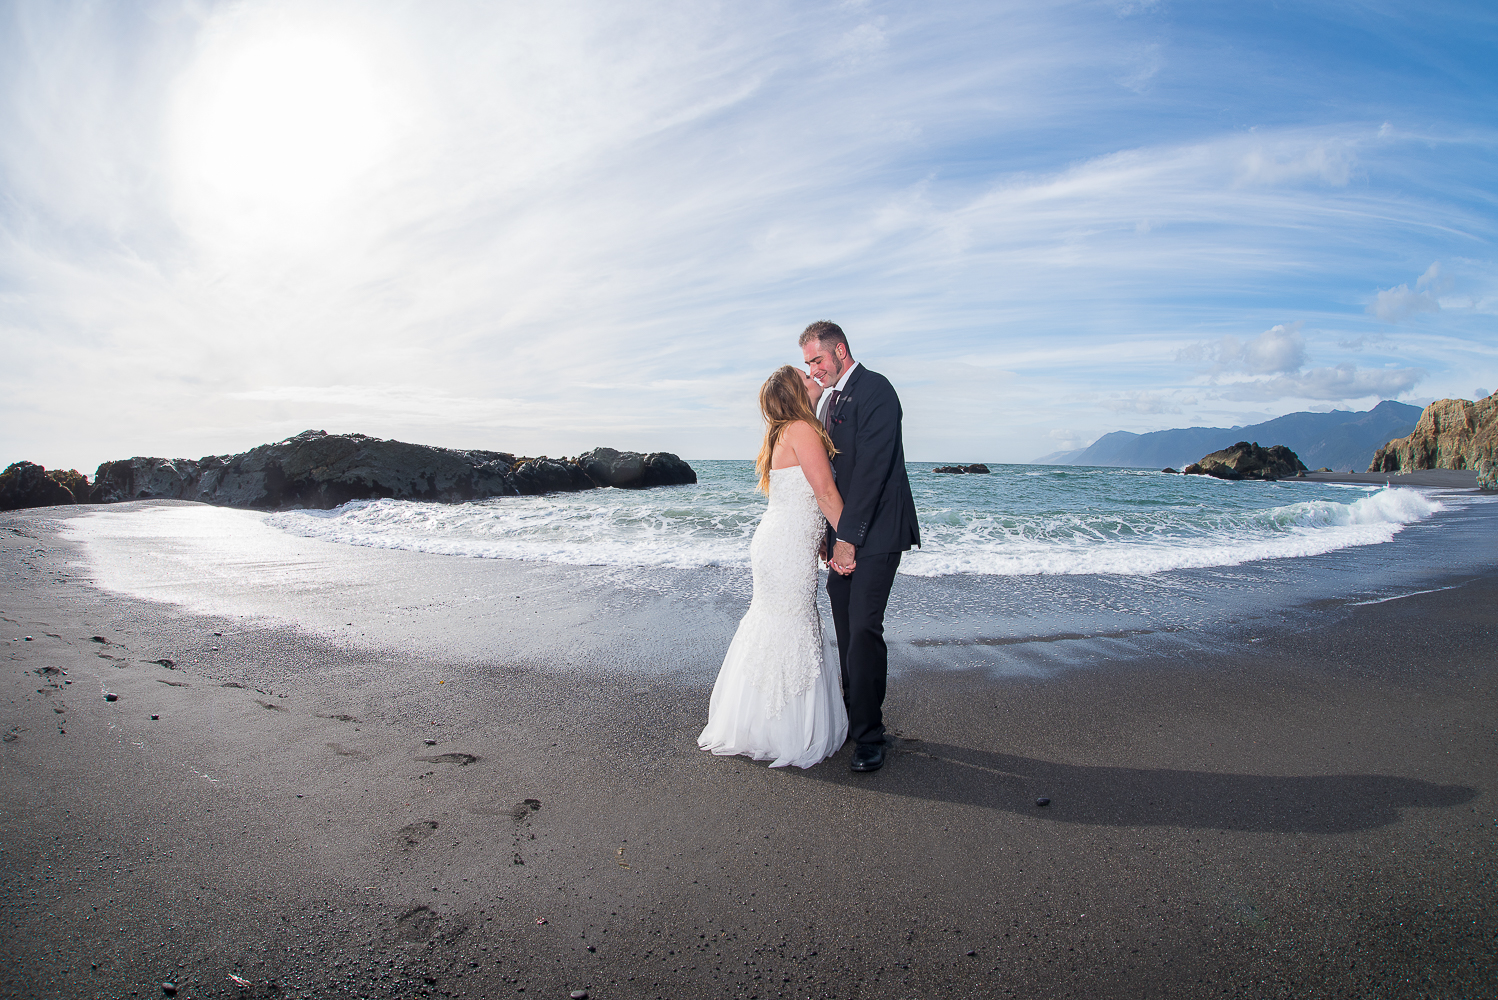 Shelter Cove-Intimate Destination beach Wedding-Parky's Pics Photography-Humboldt County_-31.jpg